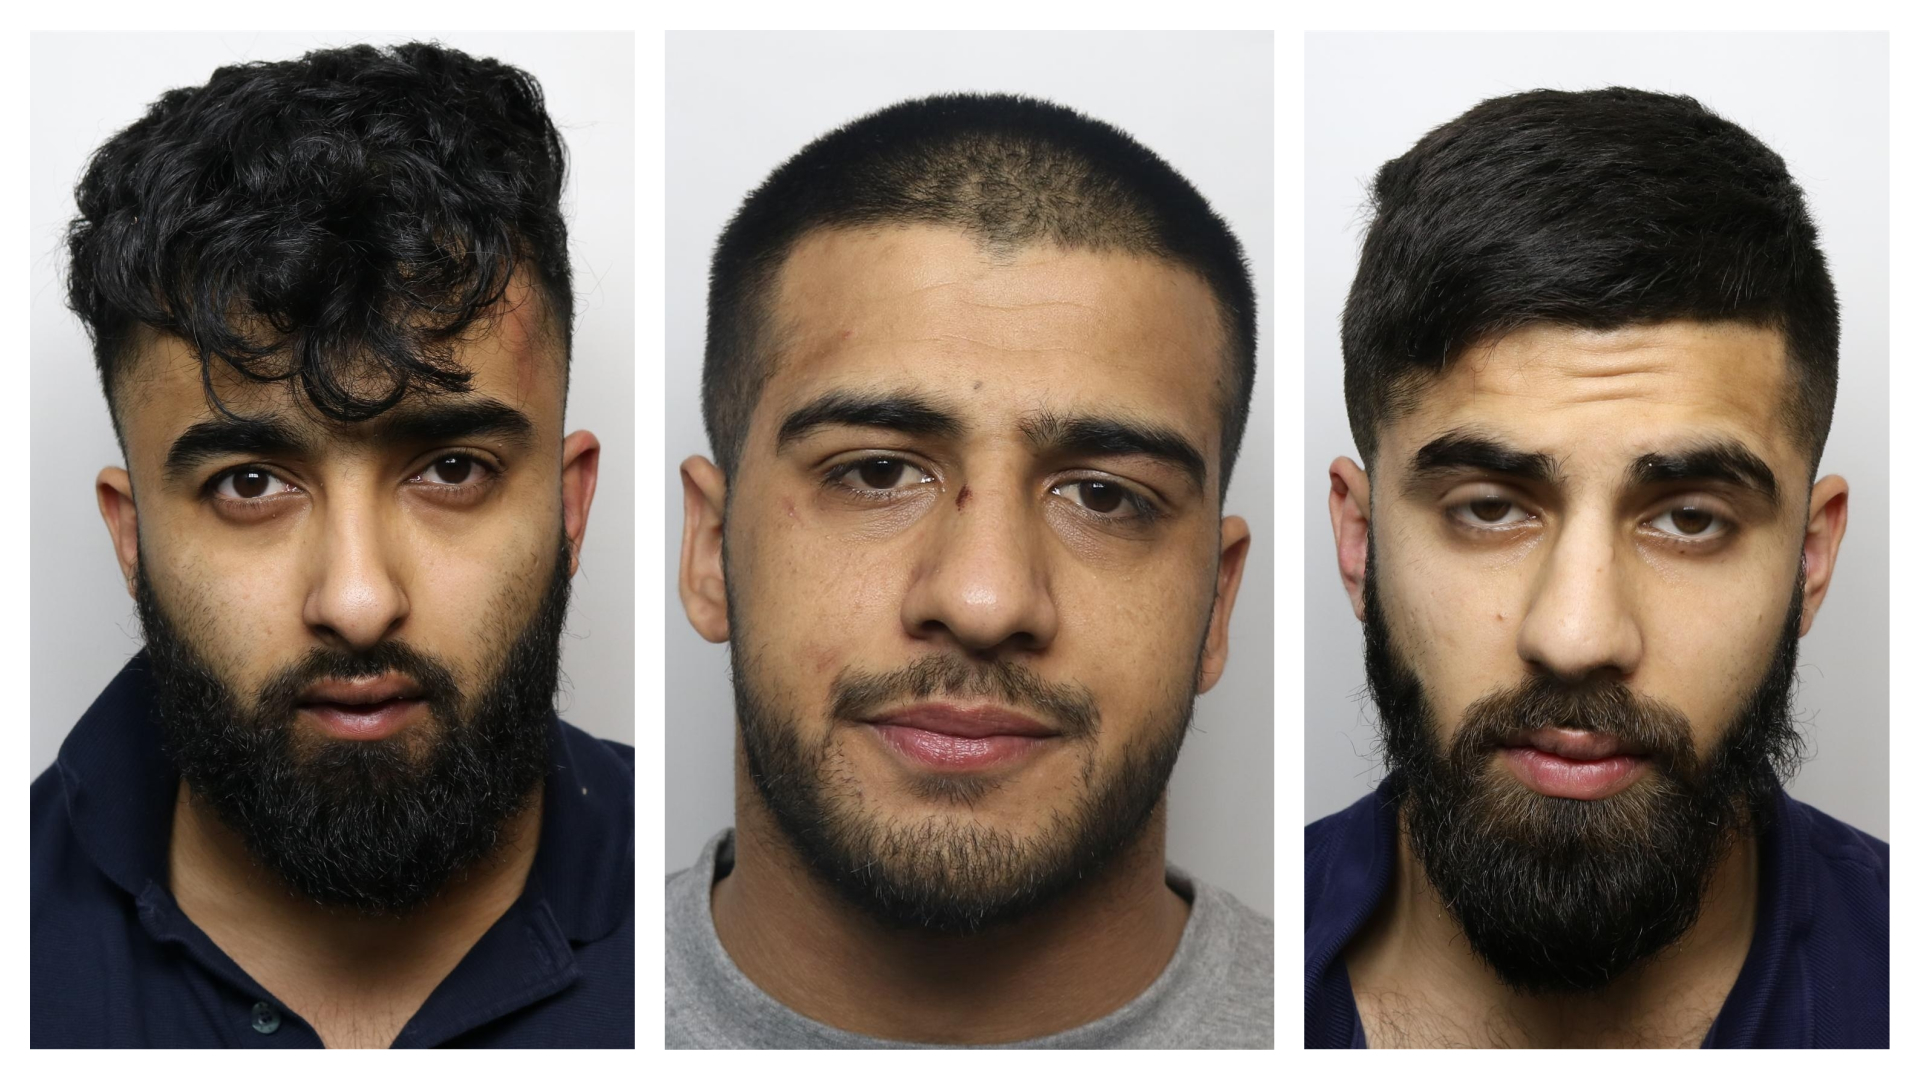 Bilal Shah, Baber Iqbal and Abuzar Raja jailed for stealing Mercedes and BMWs in Eccleshill house burglary